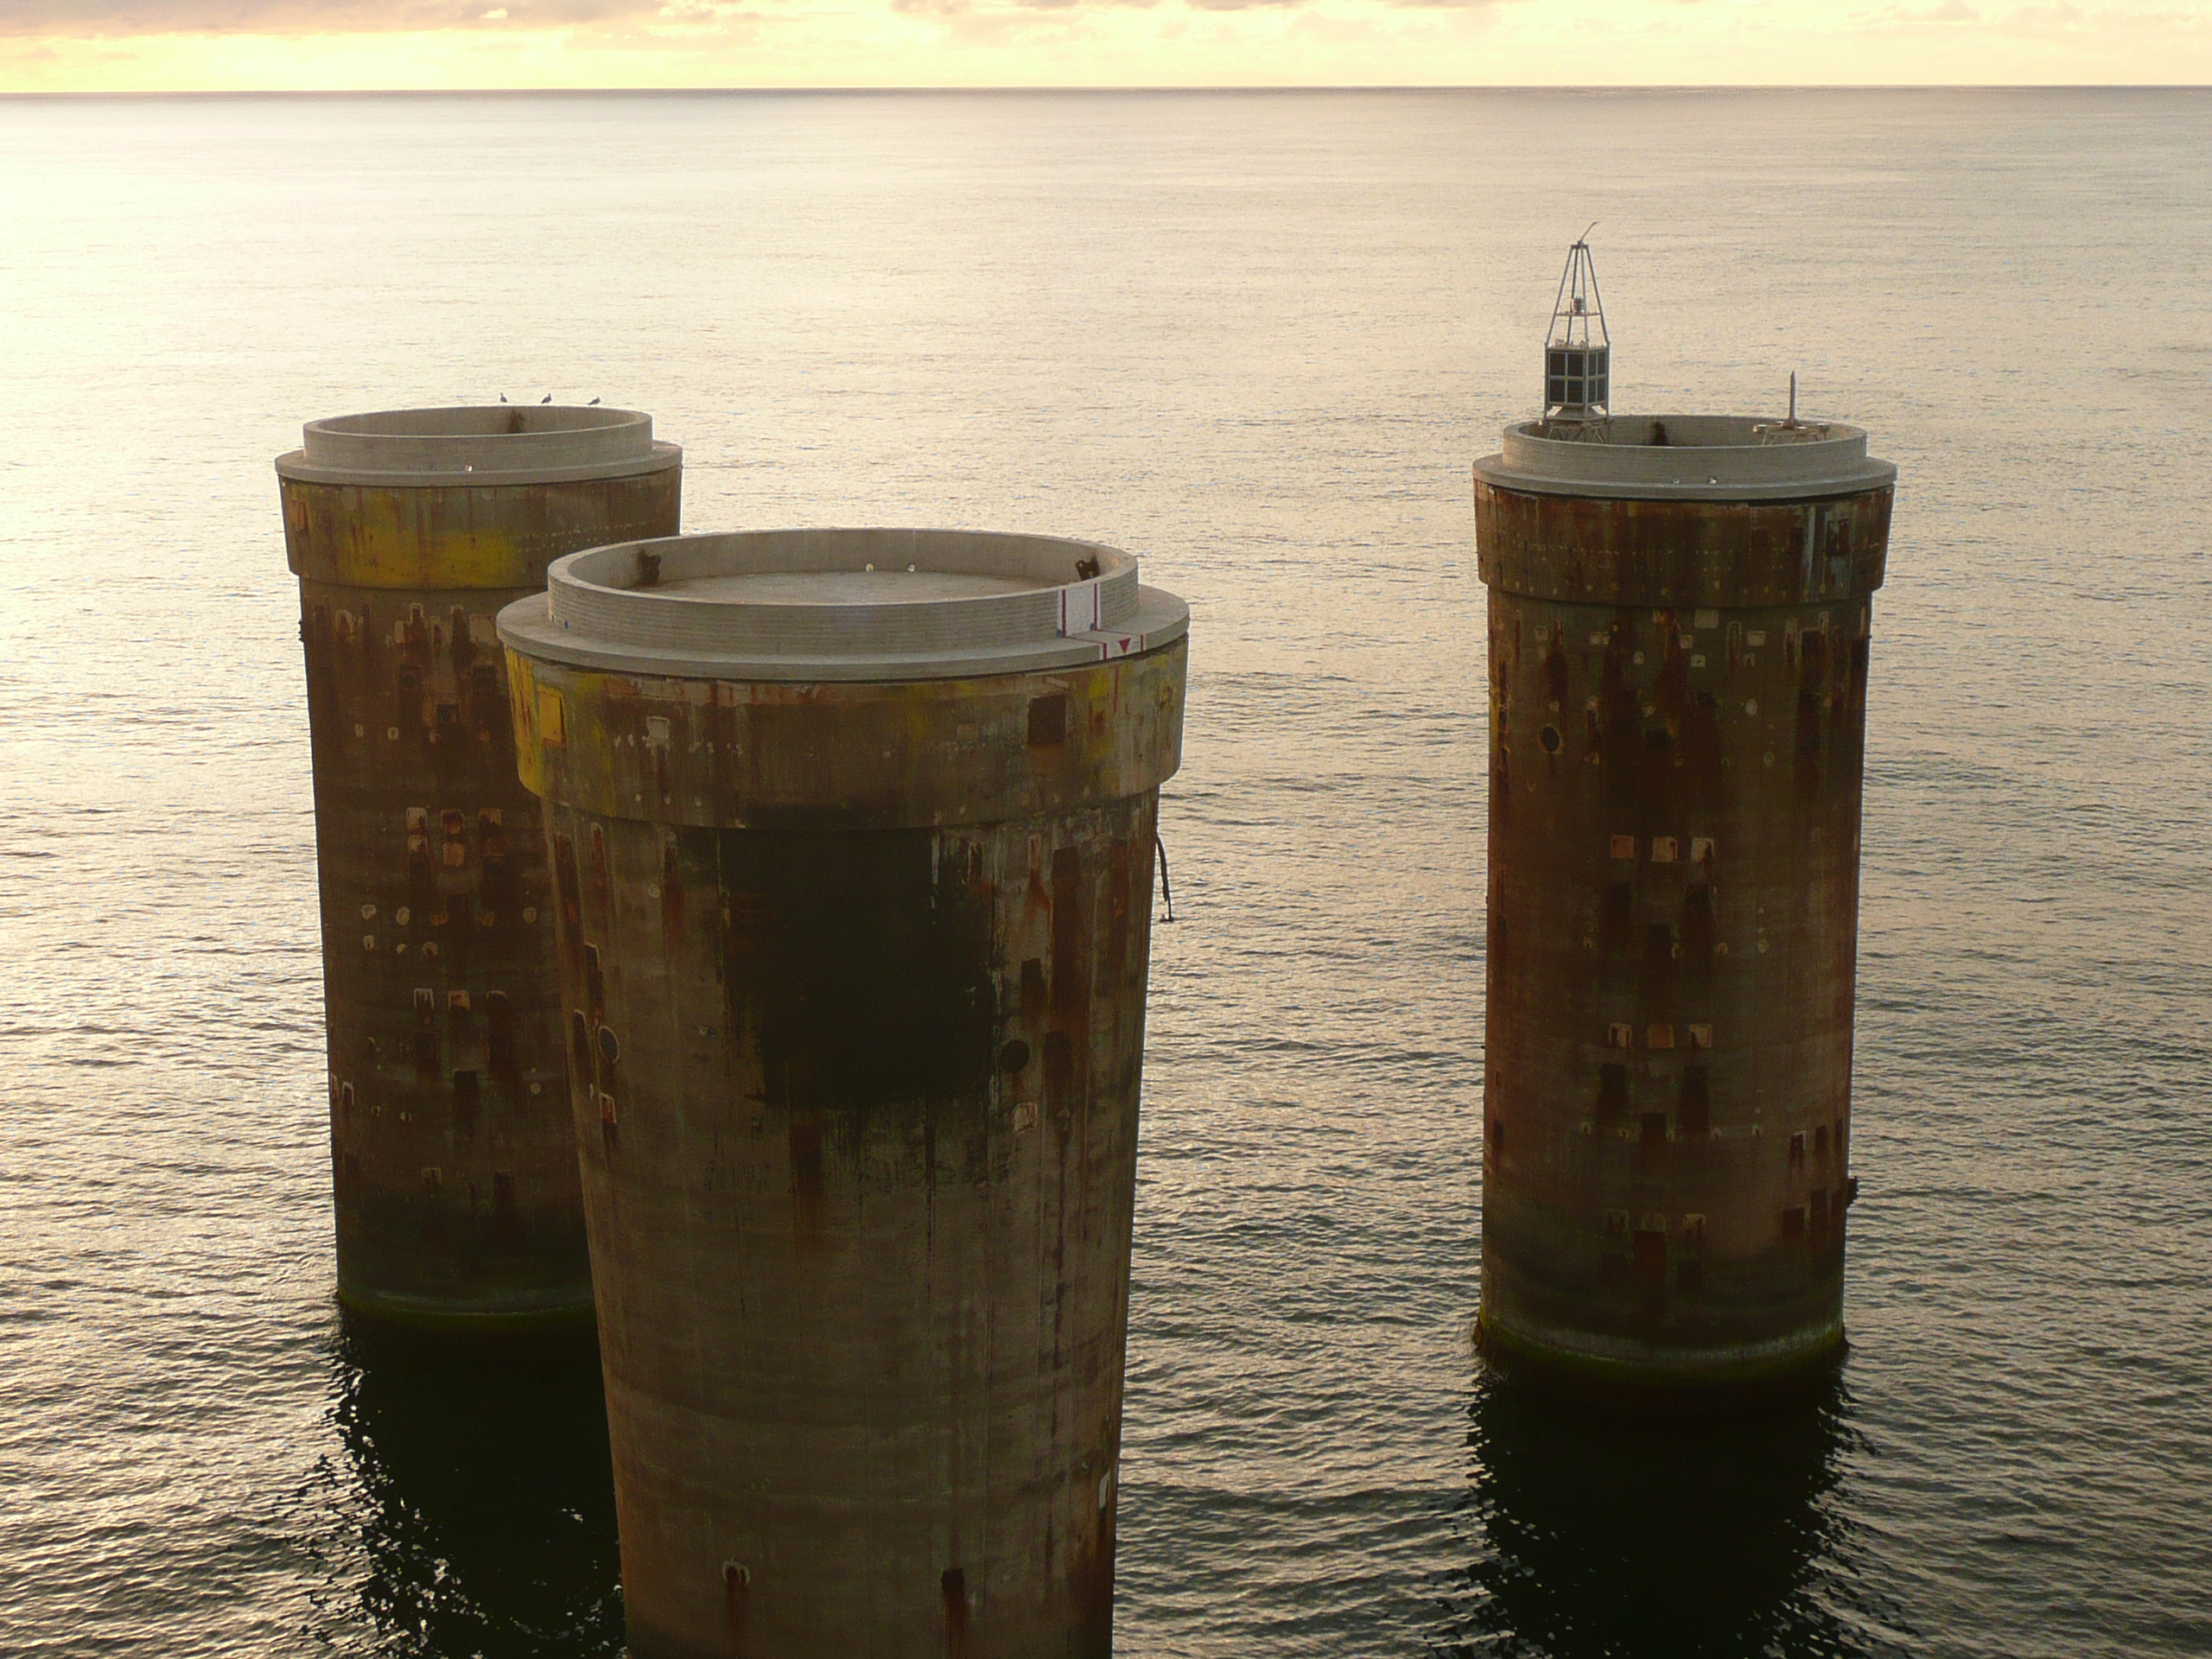 Figure 4: The remains of the concrete platforms left on Frigg field in the North Sea. © Total E&P Norge.